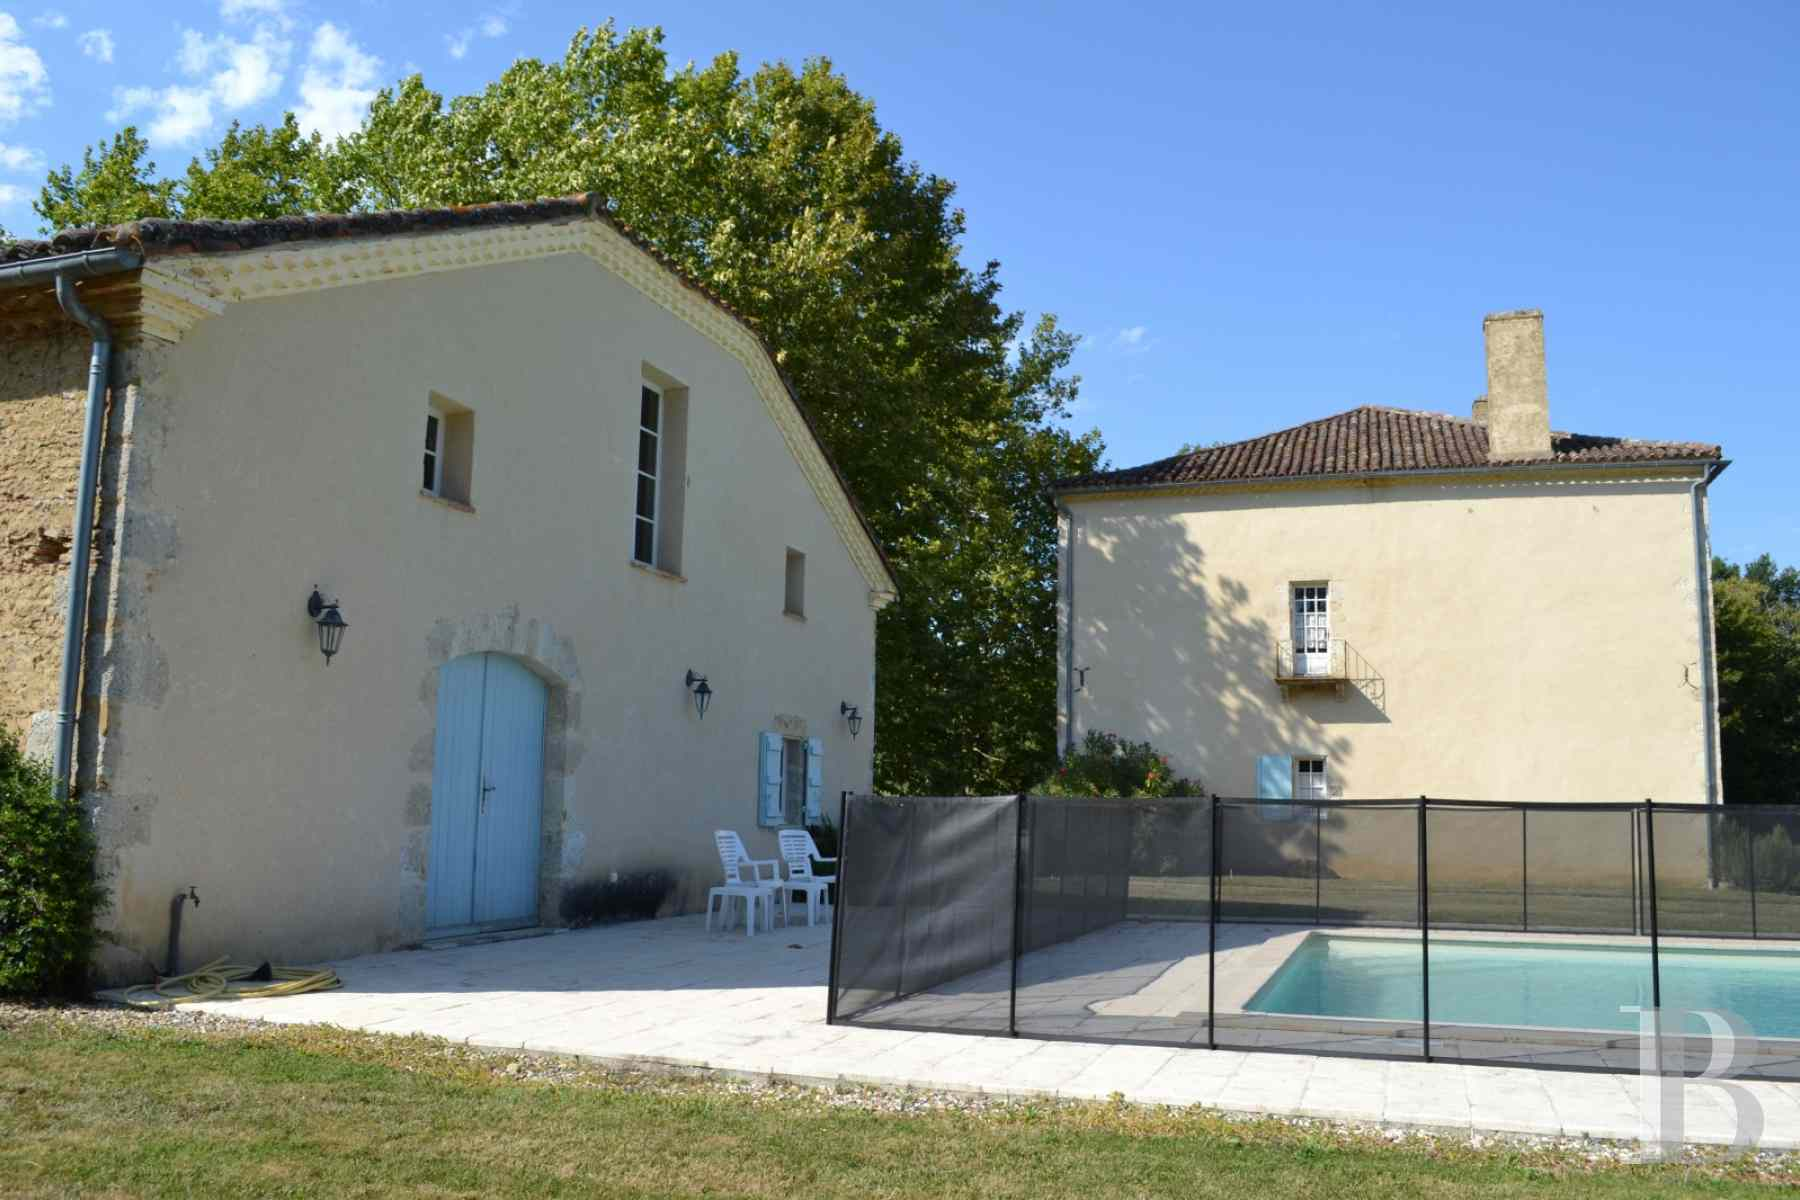 property for sale France aquitaine gascony armagnac - 18 zoom